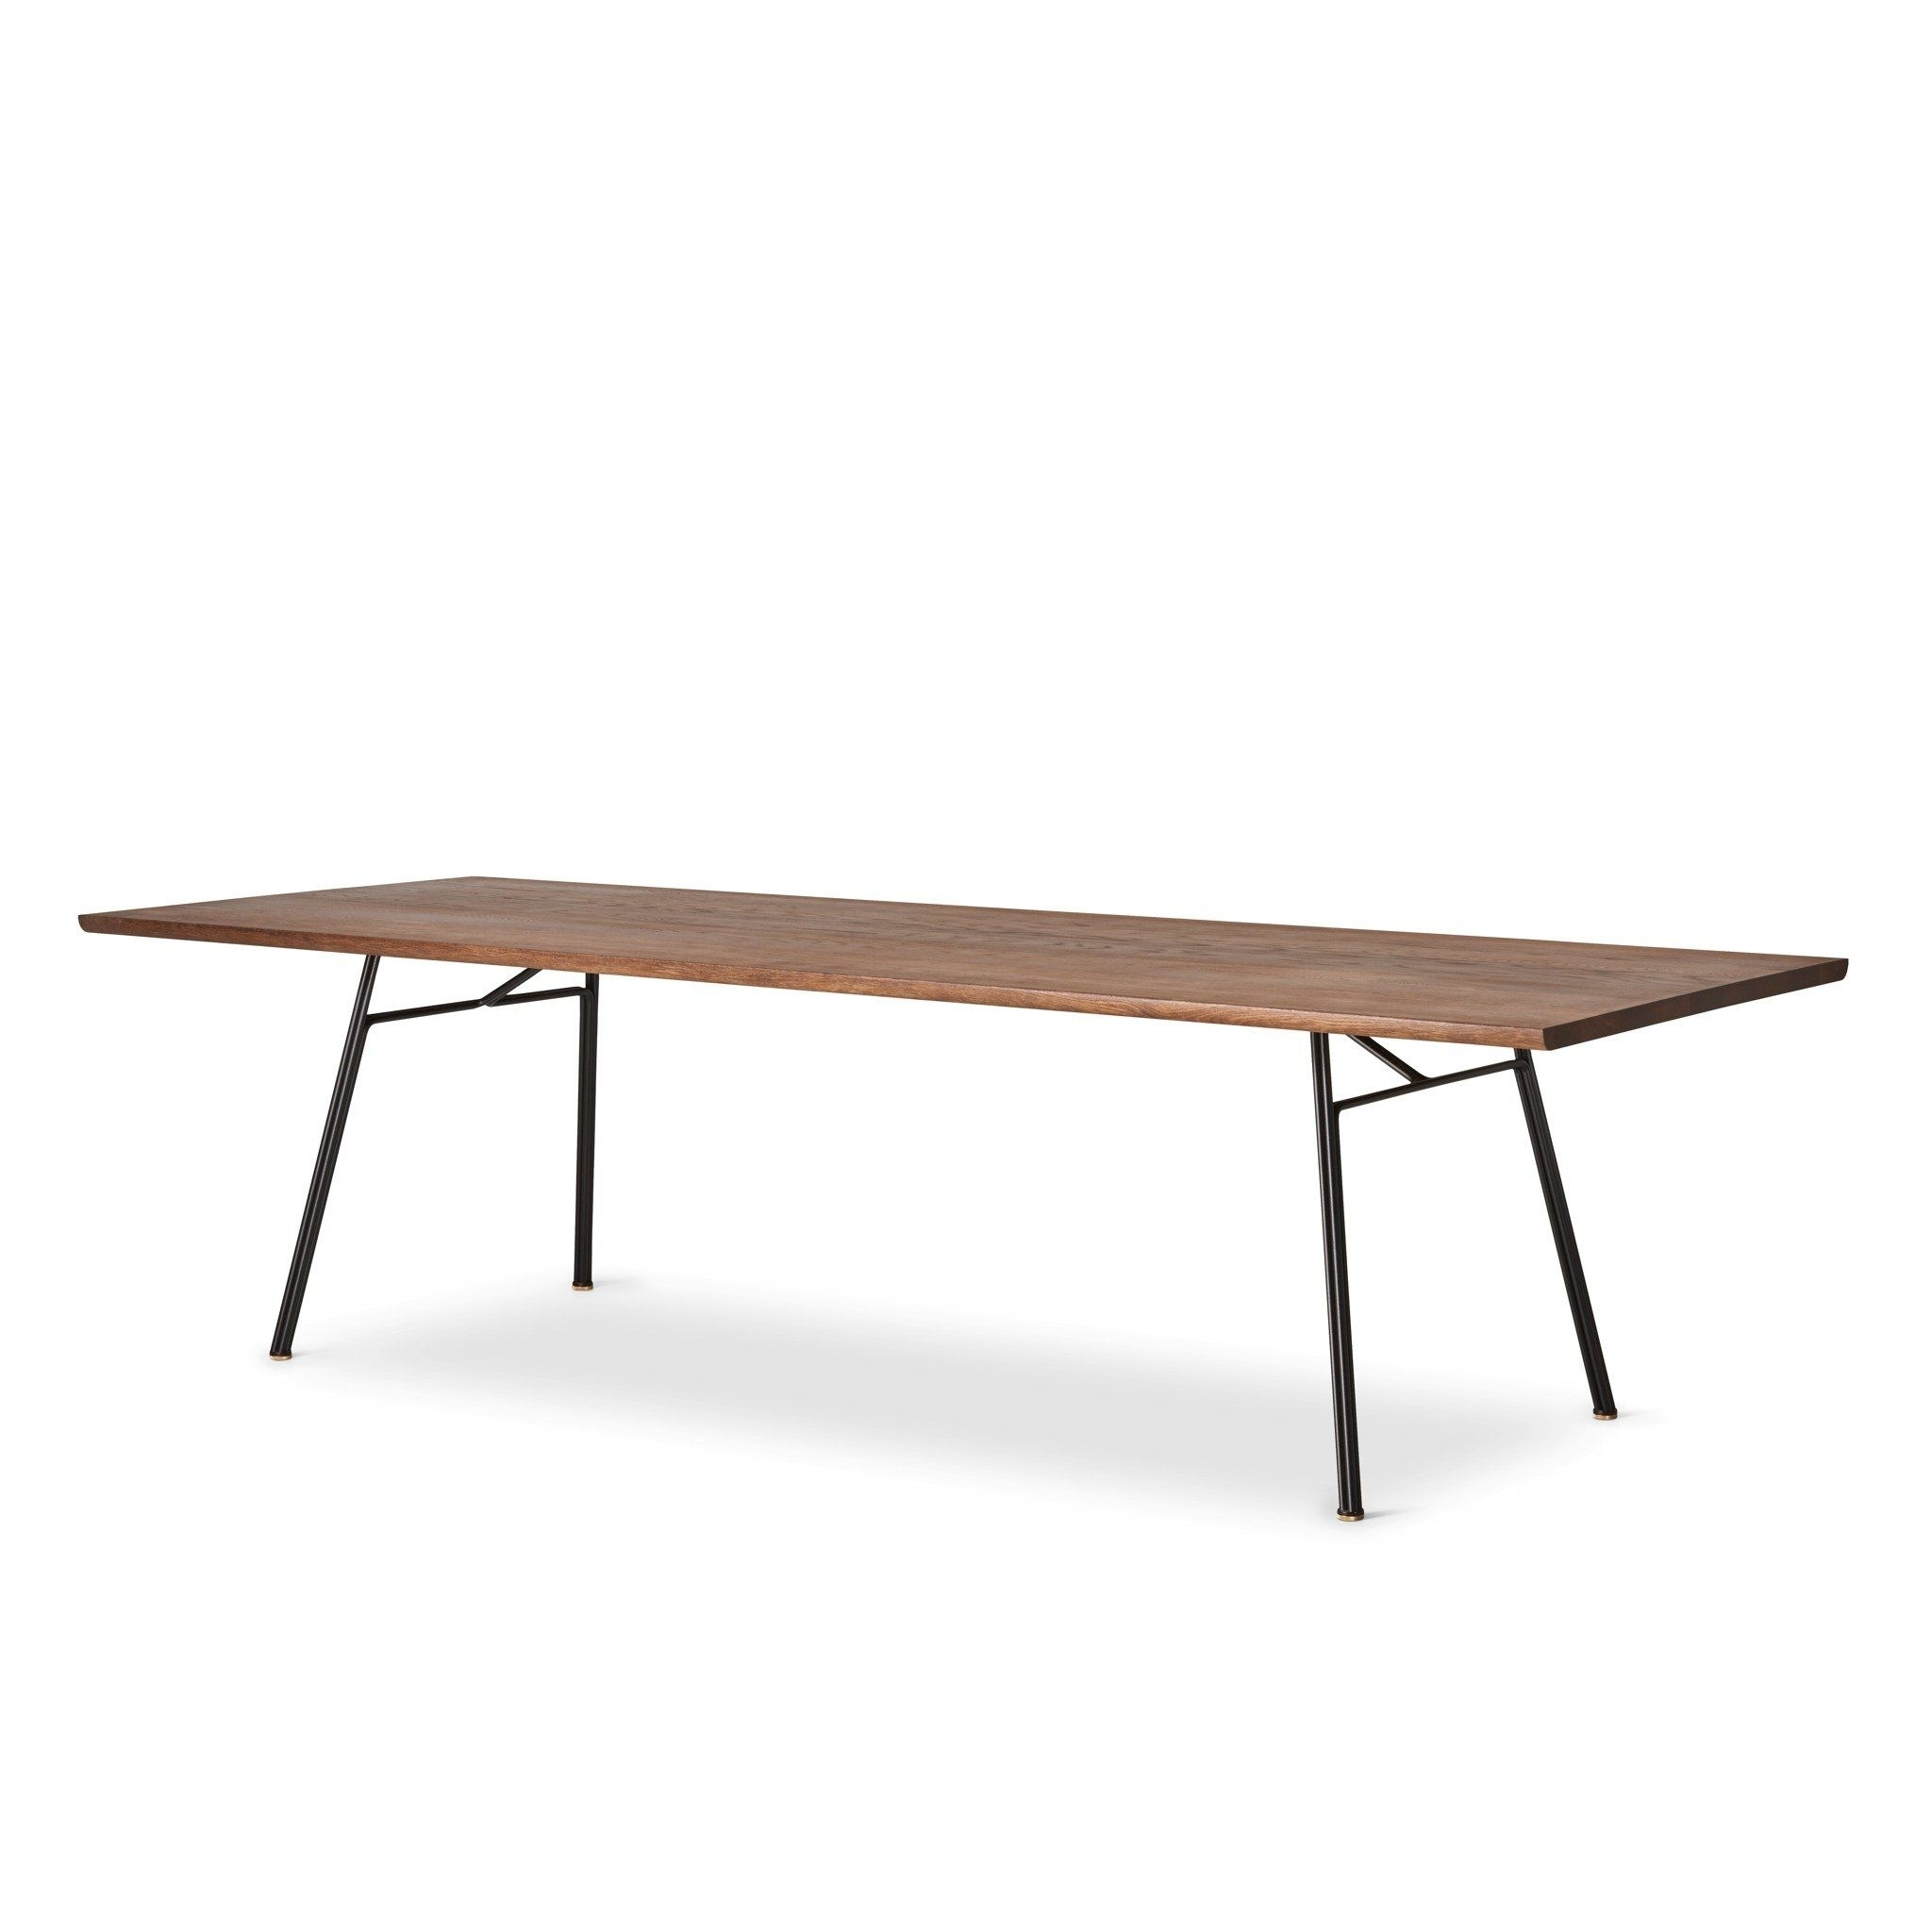 Corduroy Table Rectangular W90 Cmdk3 | Haus, Solid Wood And Woods In Latest Lassen Extension Rectangle Dining Tables (View 11 of 20)